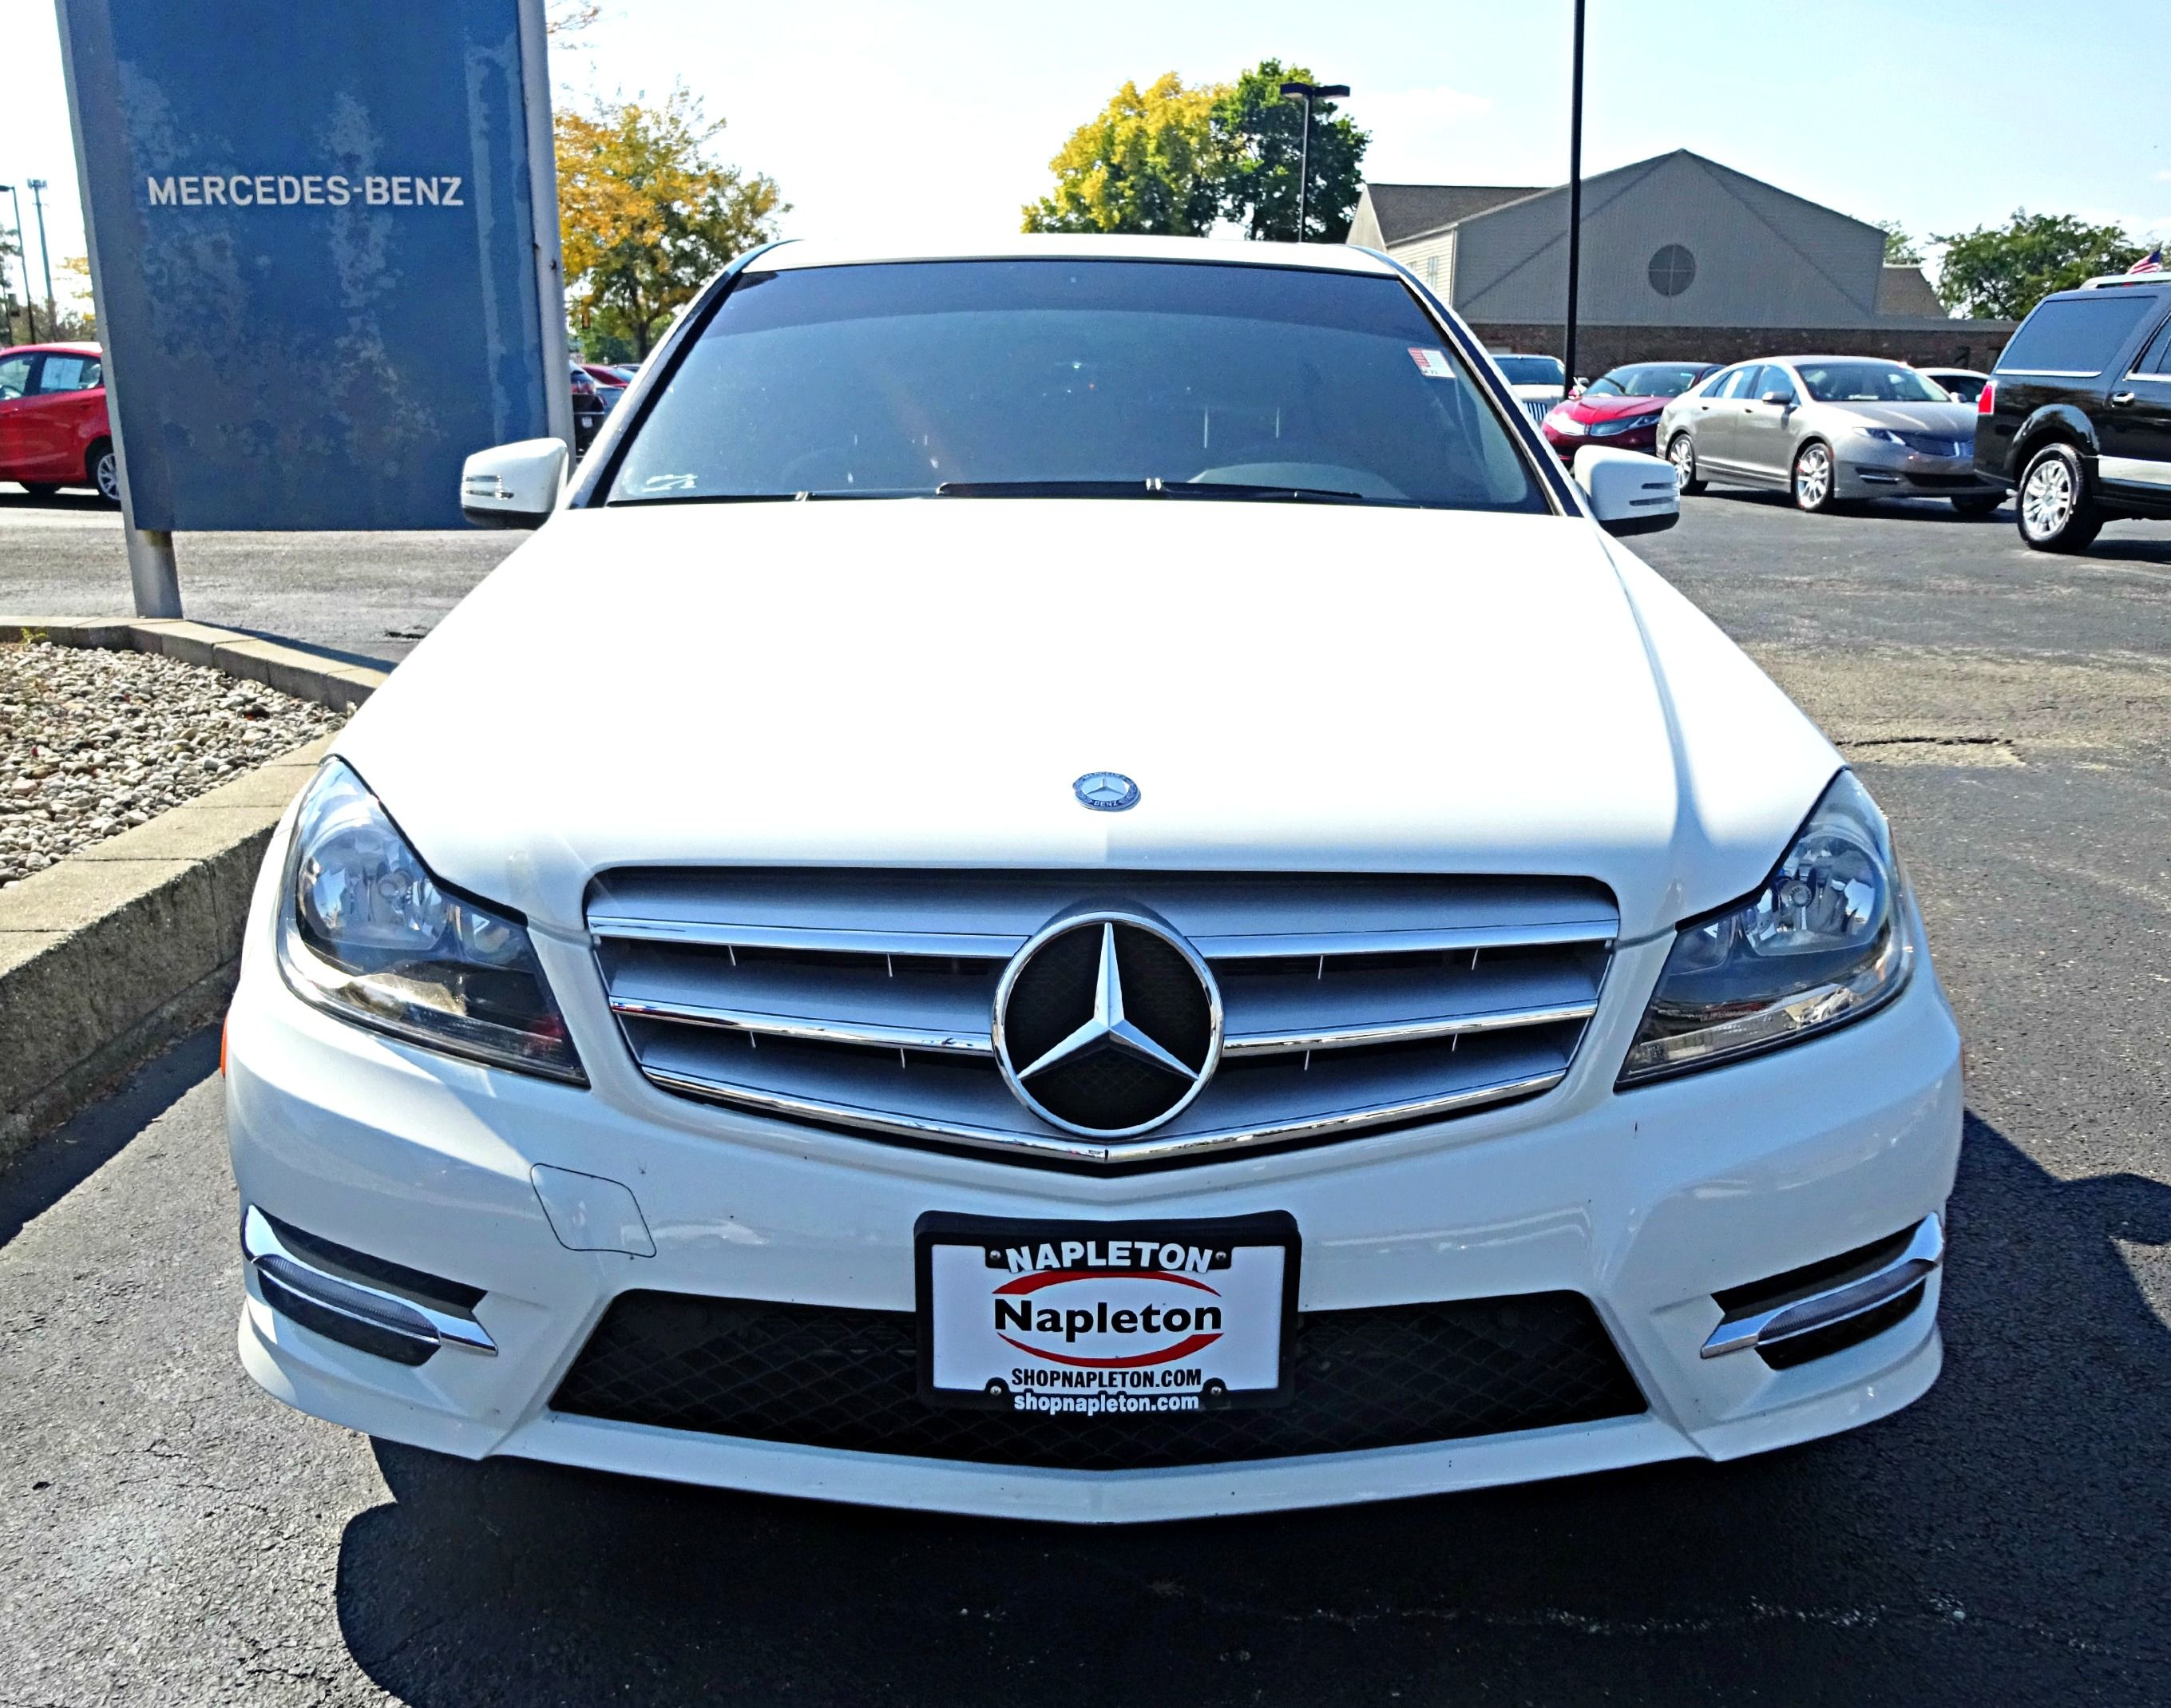 Used 2012 mercedes benz c class c300 sport in arctic white for 2012 mercedes benz c300